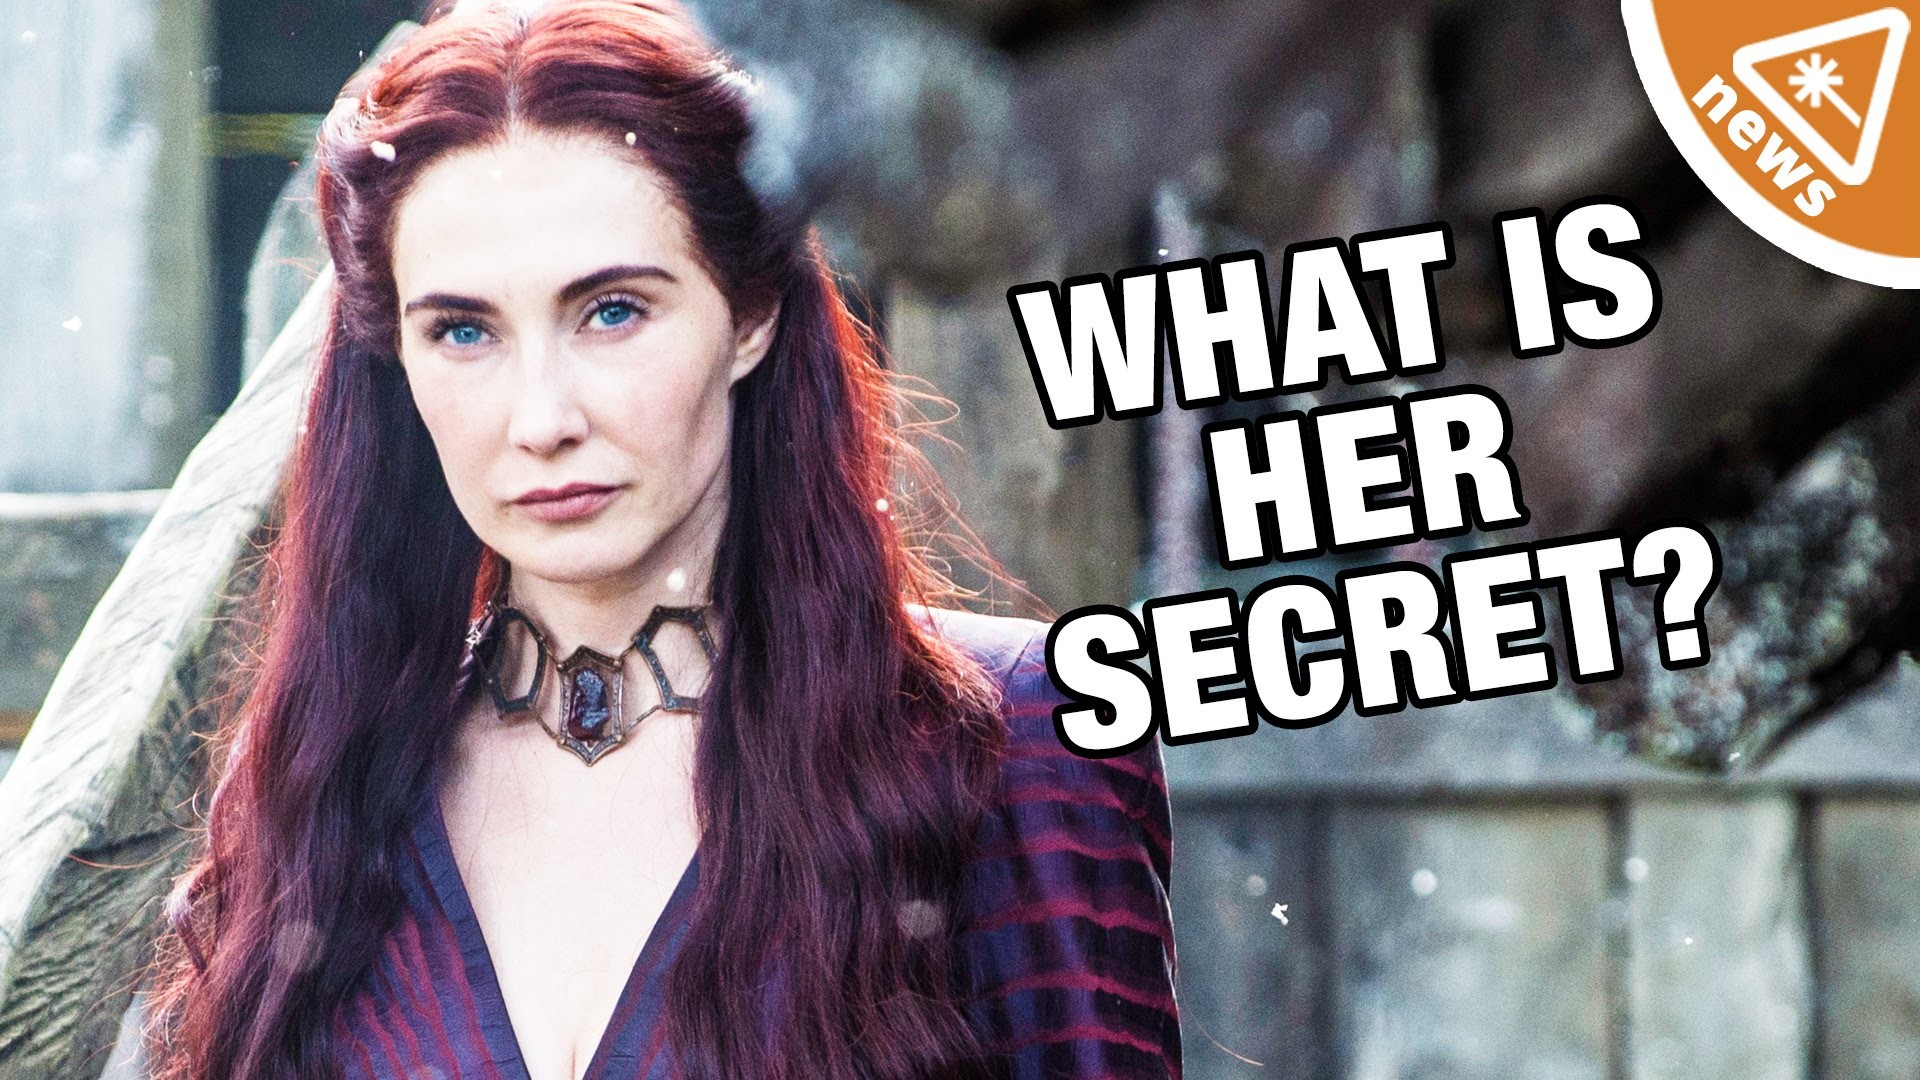 Res: 1920x1080, What is Melisandre's Big Secret in Game of Thrones? (Nerdist News w/ Jessica  Chobot) - YouTube